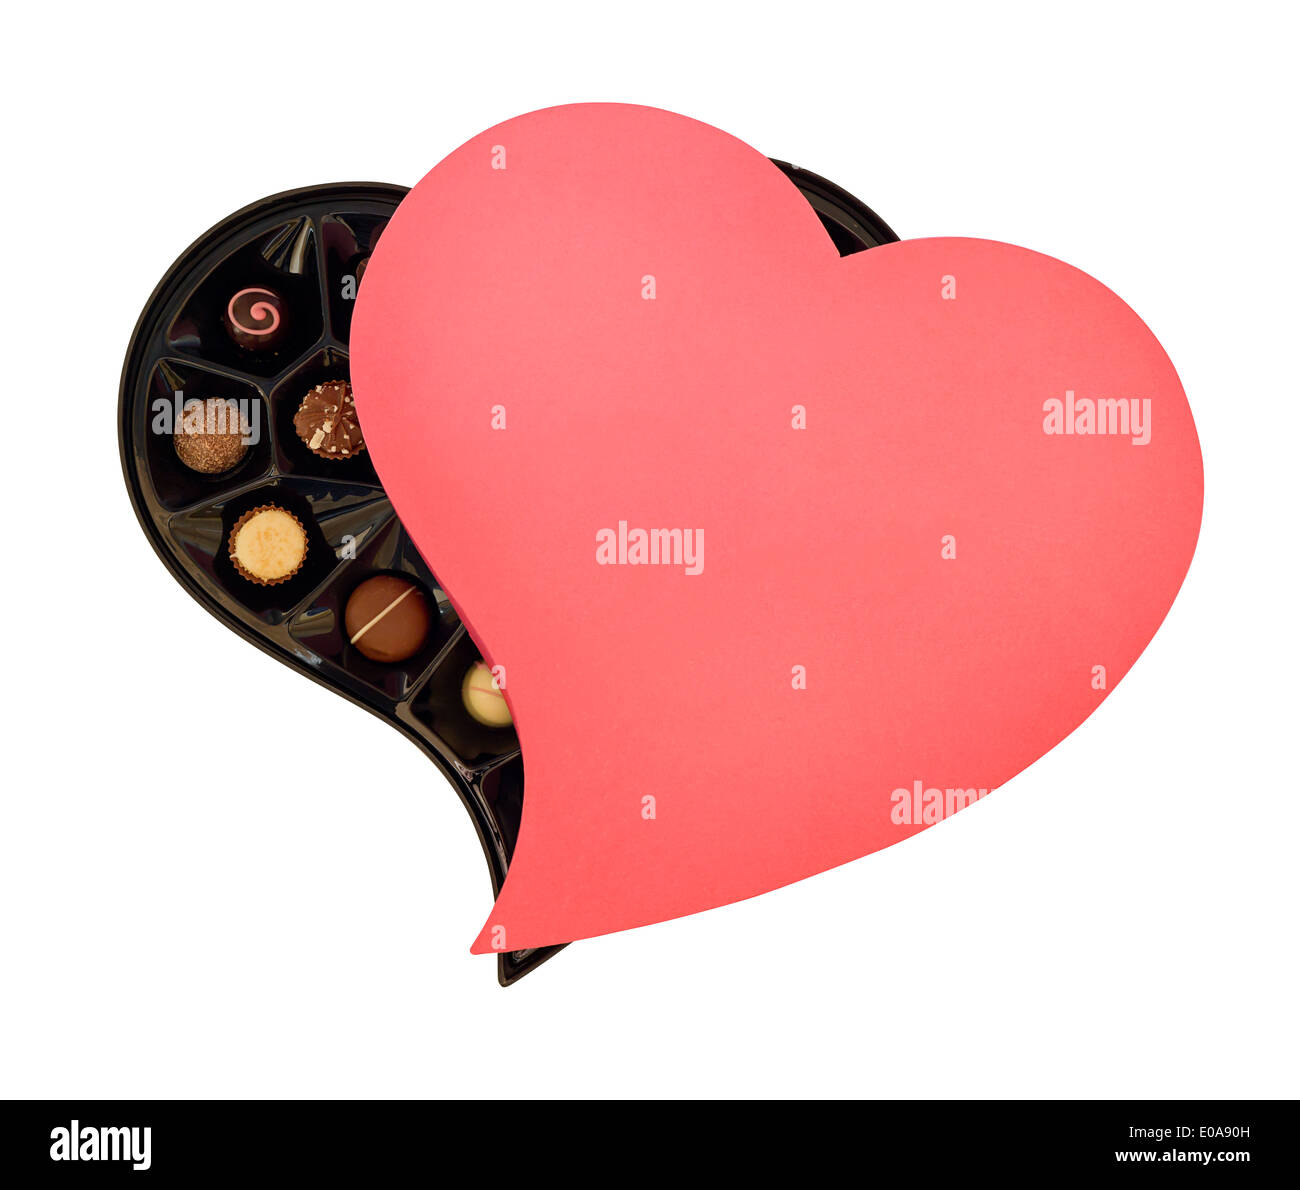 Heart shaped box of chocolates the perfect gift for your loved one on Valentines Day or Chocolate lovers - Stock Image